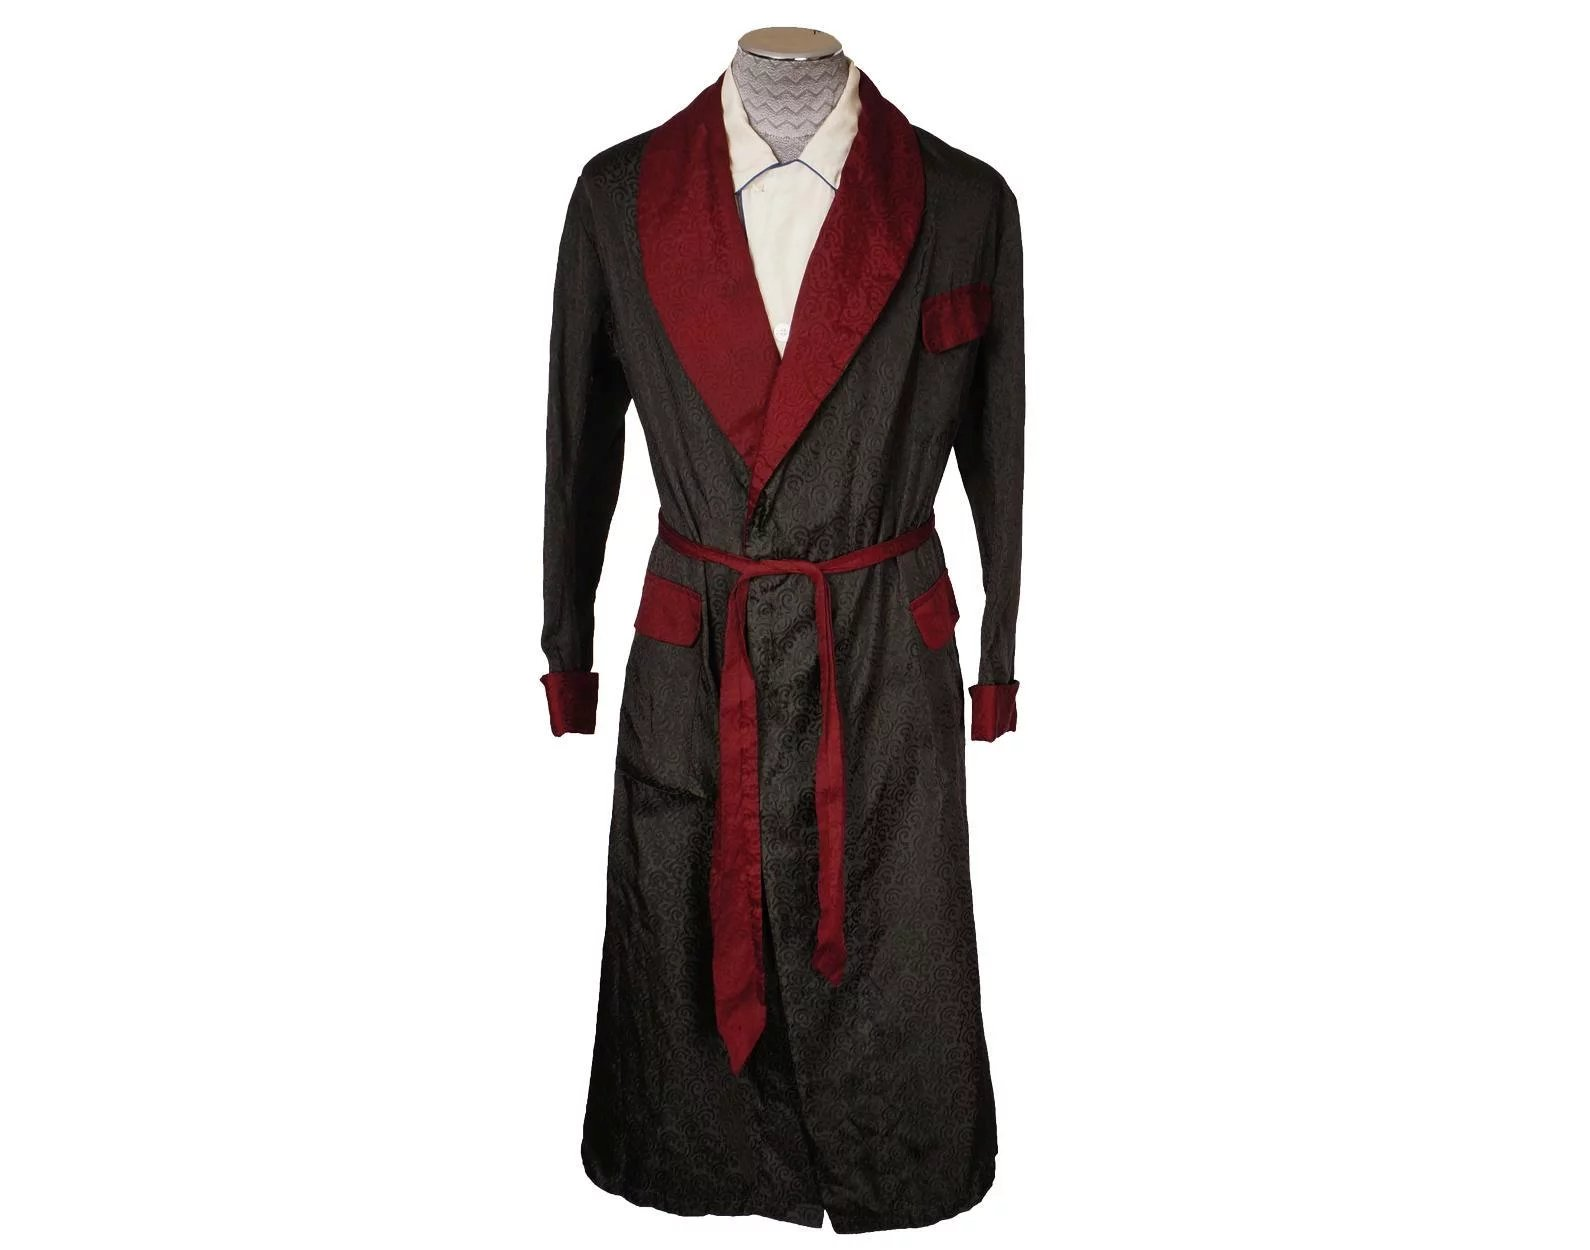 Vintage 1940s Mens Dressing Gown Green and Maroon Damask Made in ...